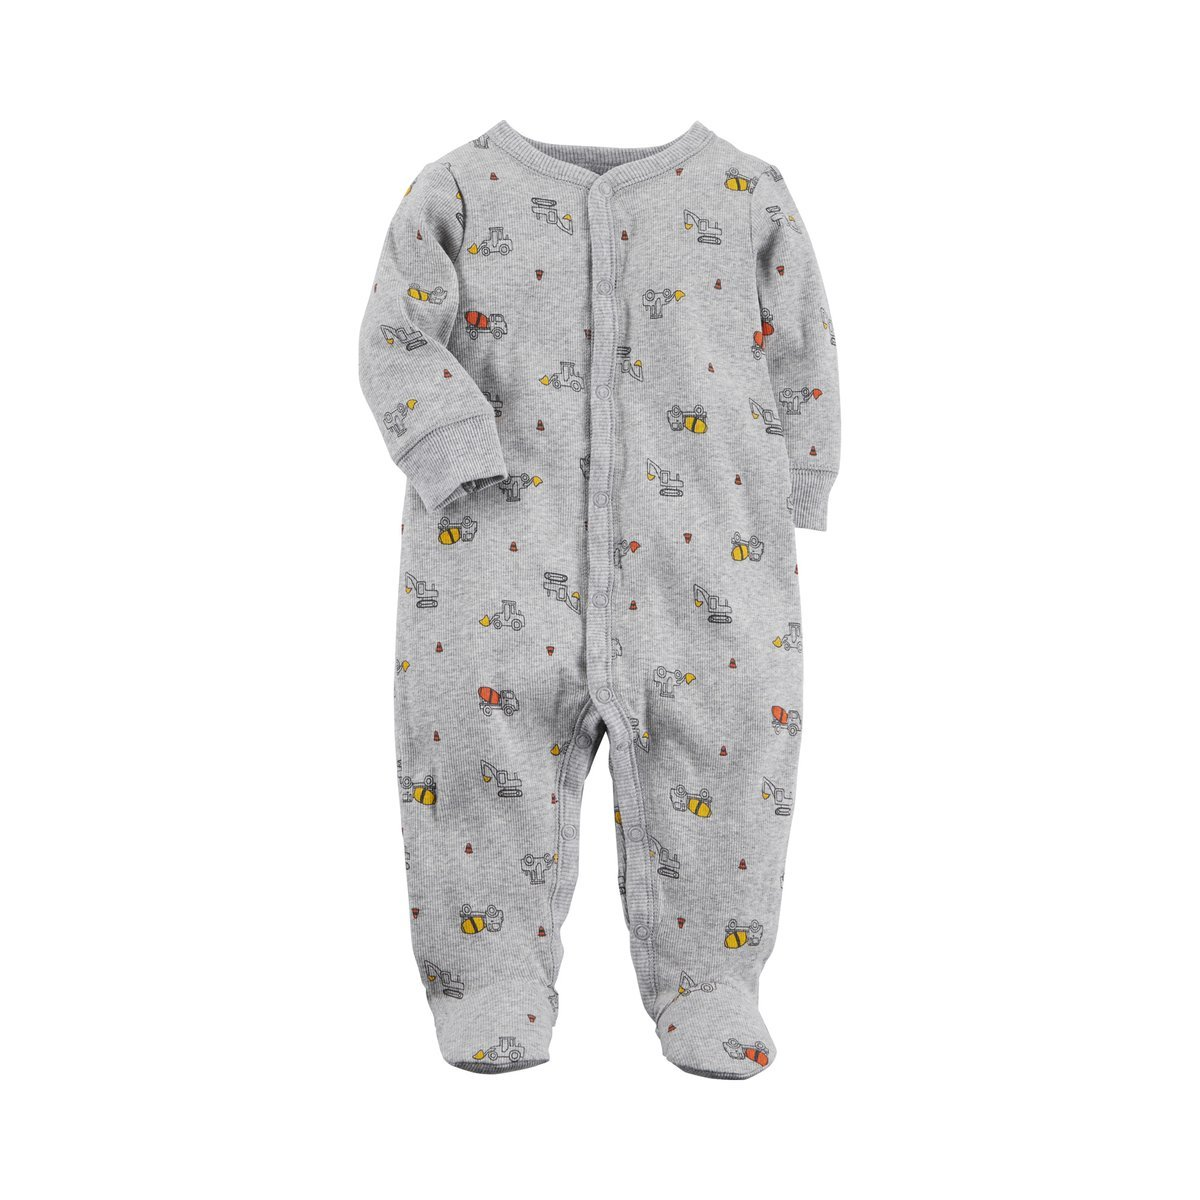 6901bf982 Carter\'s is the leading brand of children\'s clothing, gifts and  accessories in America, selling more than 10 products for every child born  in the U.S. Our ...